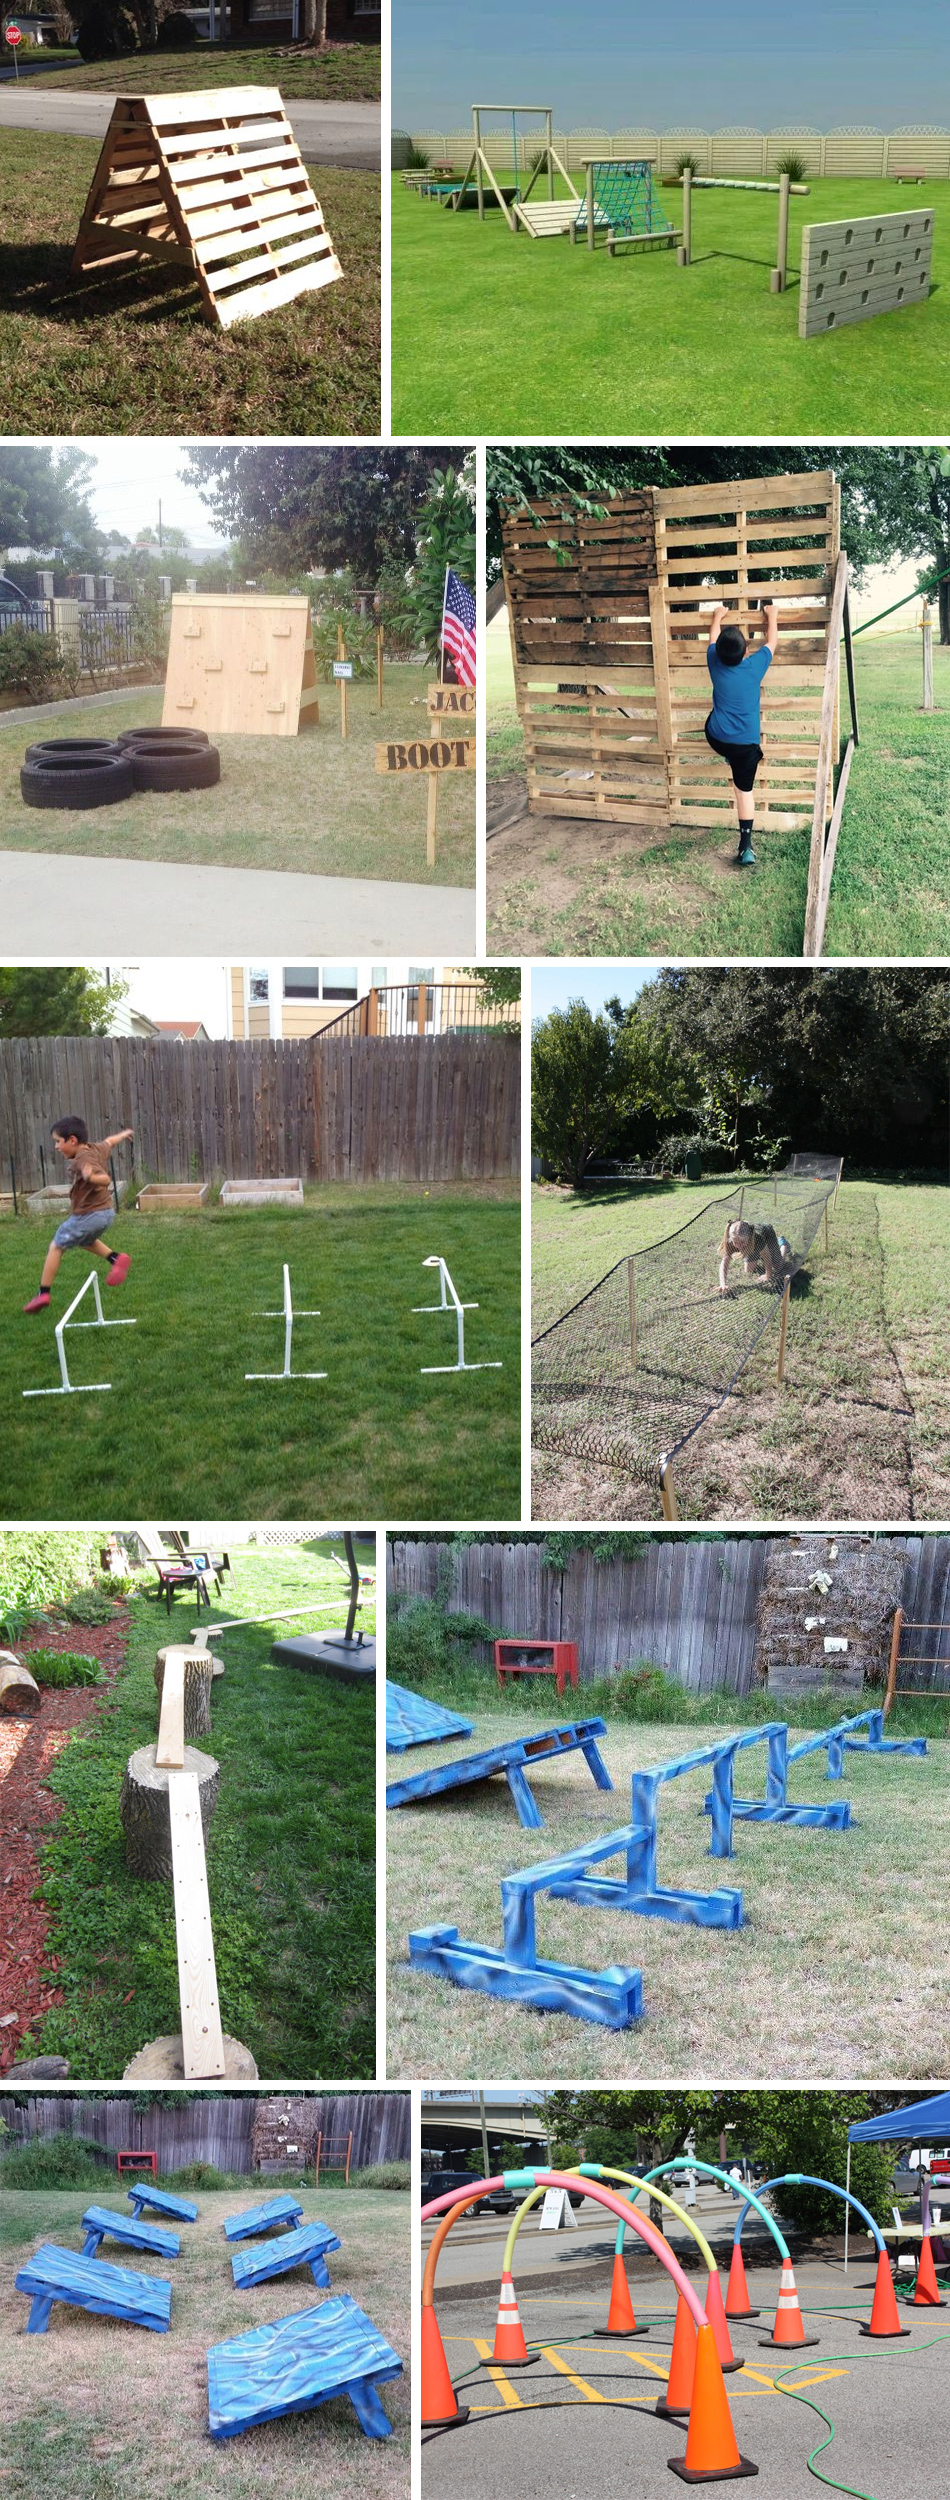 How to Organize an Epic Ninja Warrior Party in Your Backyard?